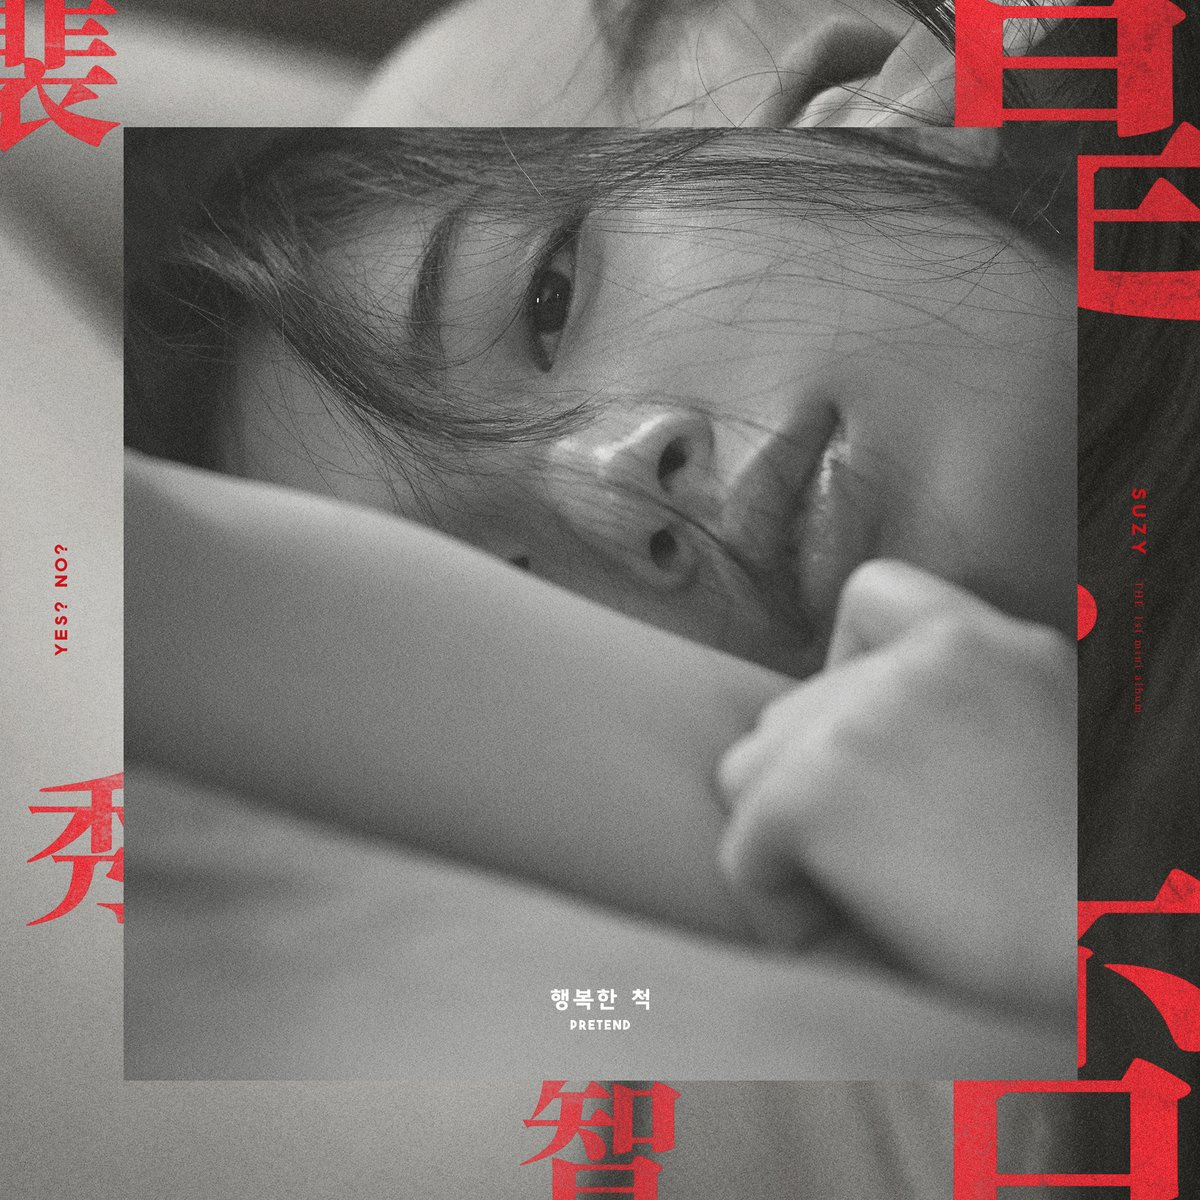 """Watch: Suzy Releases Live Teaser For Solo Pre-Release Track """"Pretend"""""""